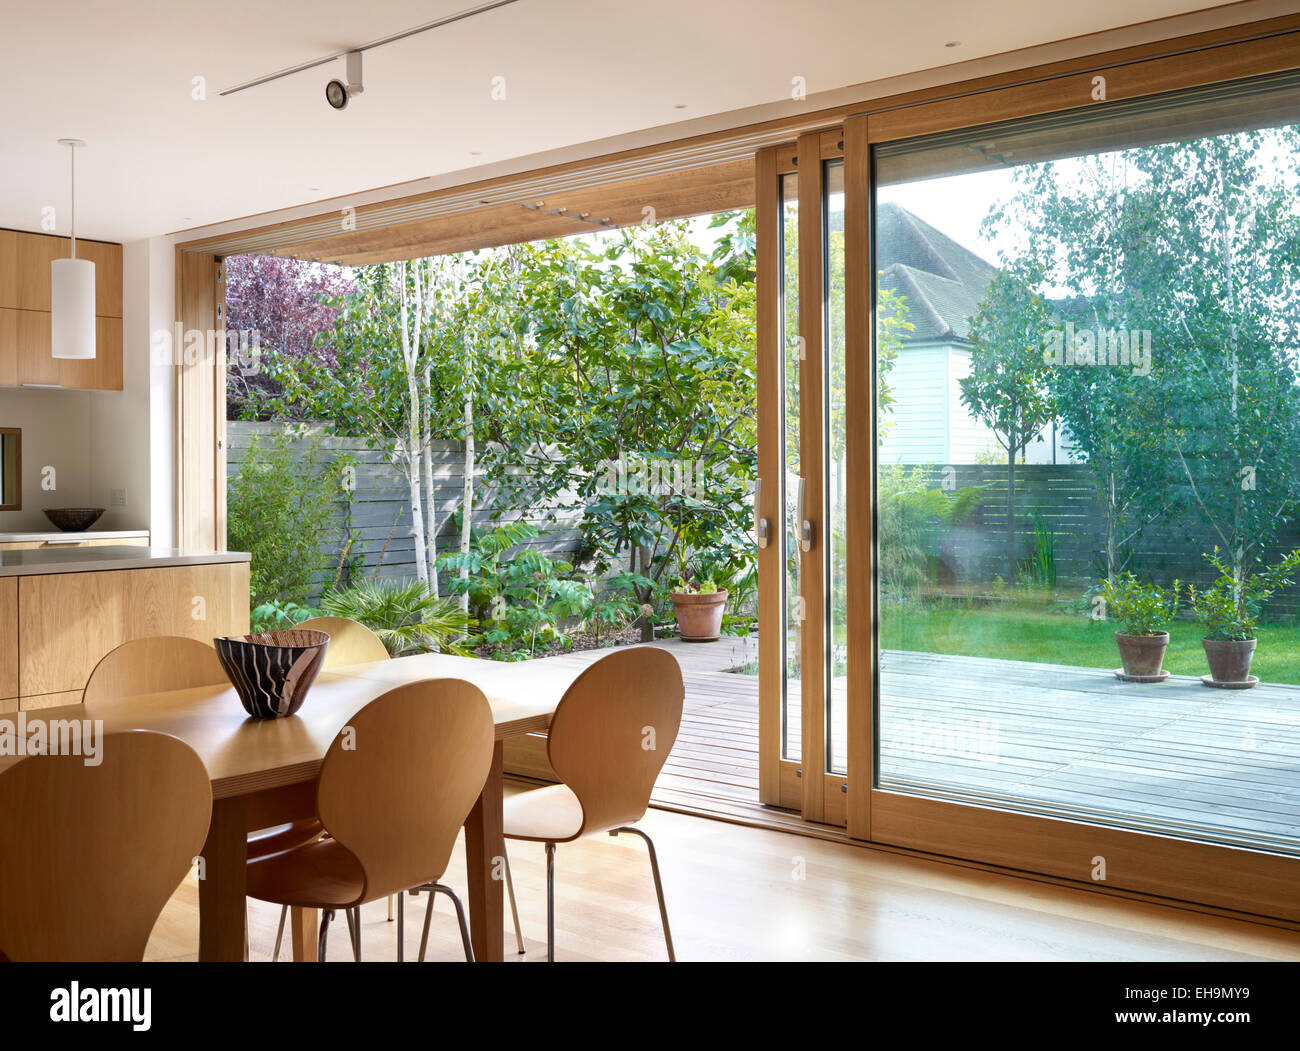 Wooden Dining Table And Chairs In Front Of Large Sliding Glass Doors,  Residential House, Lloyd Close, UK